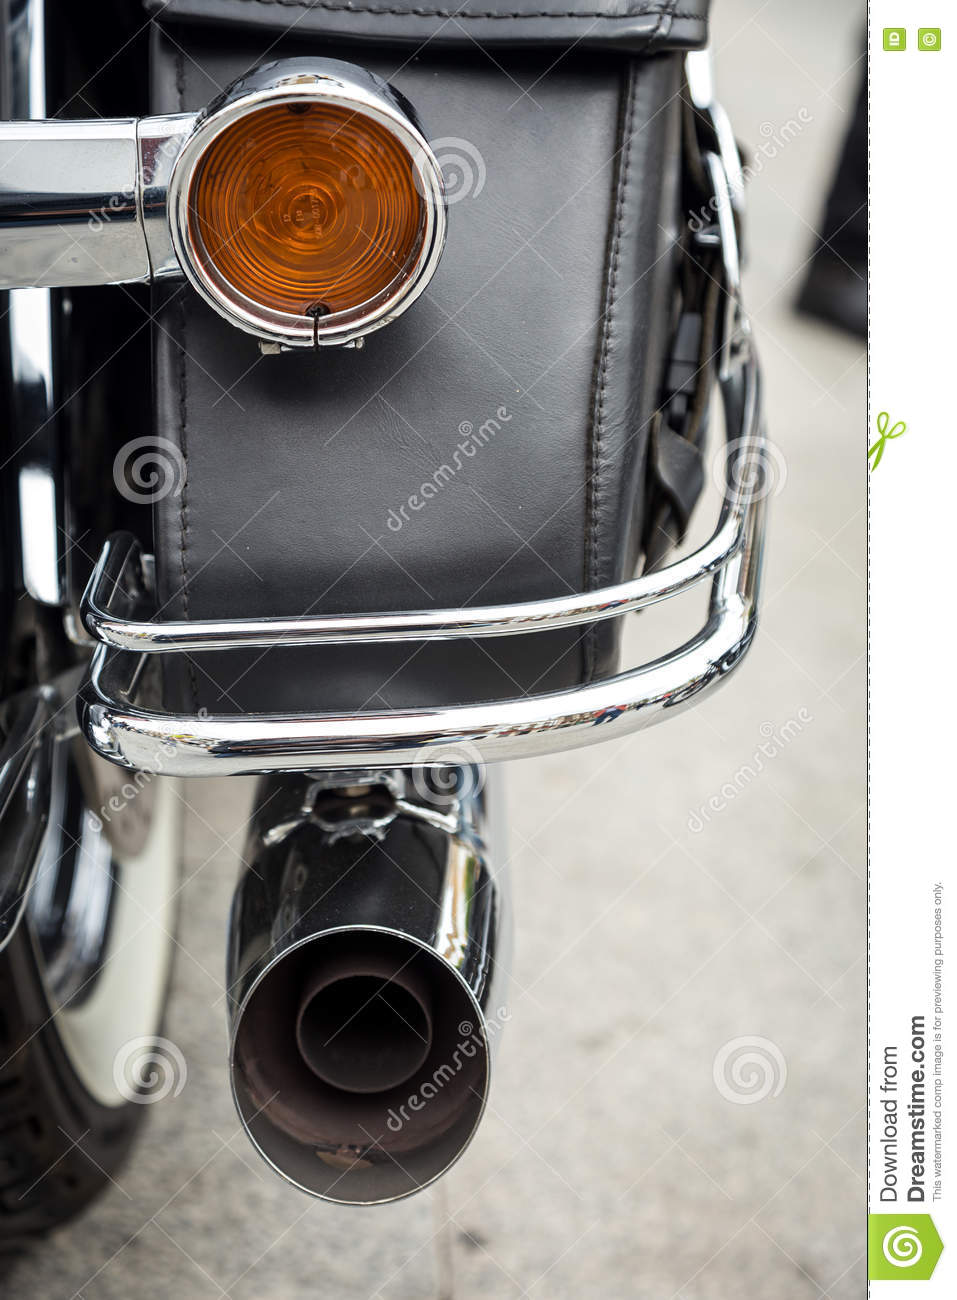 Harley Davidson Motorcycles Details Editorial Stock Photo Image Of